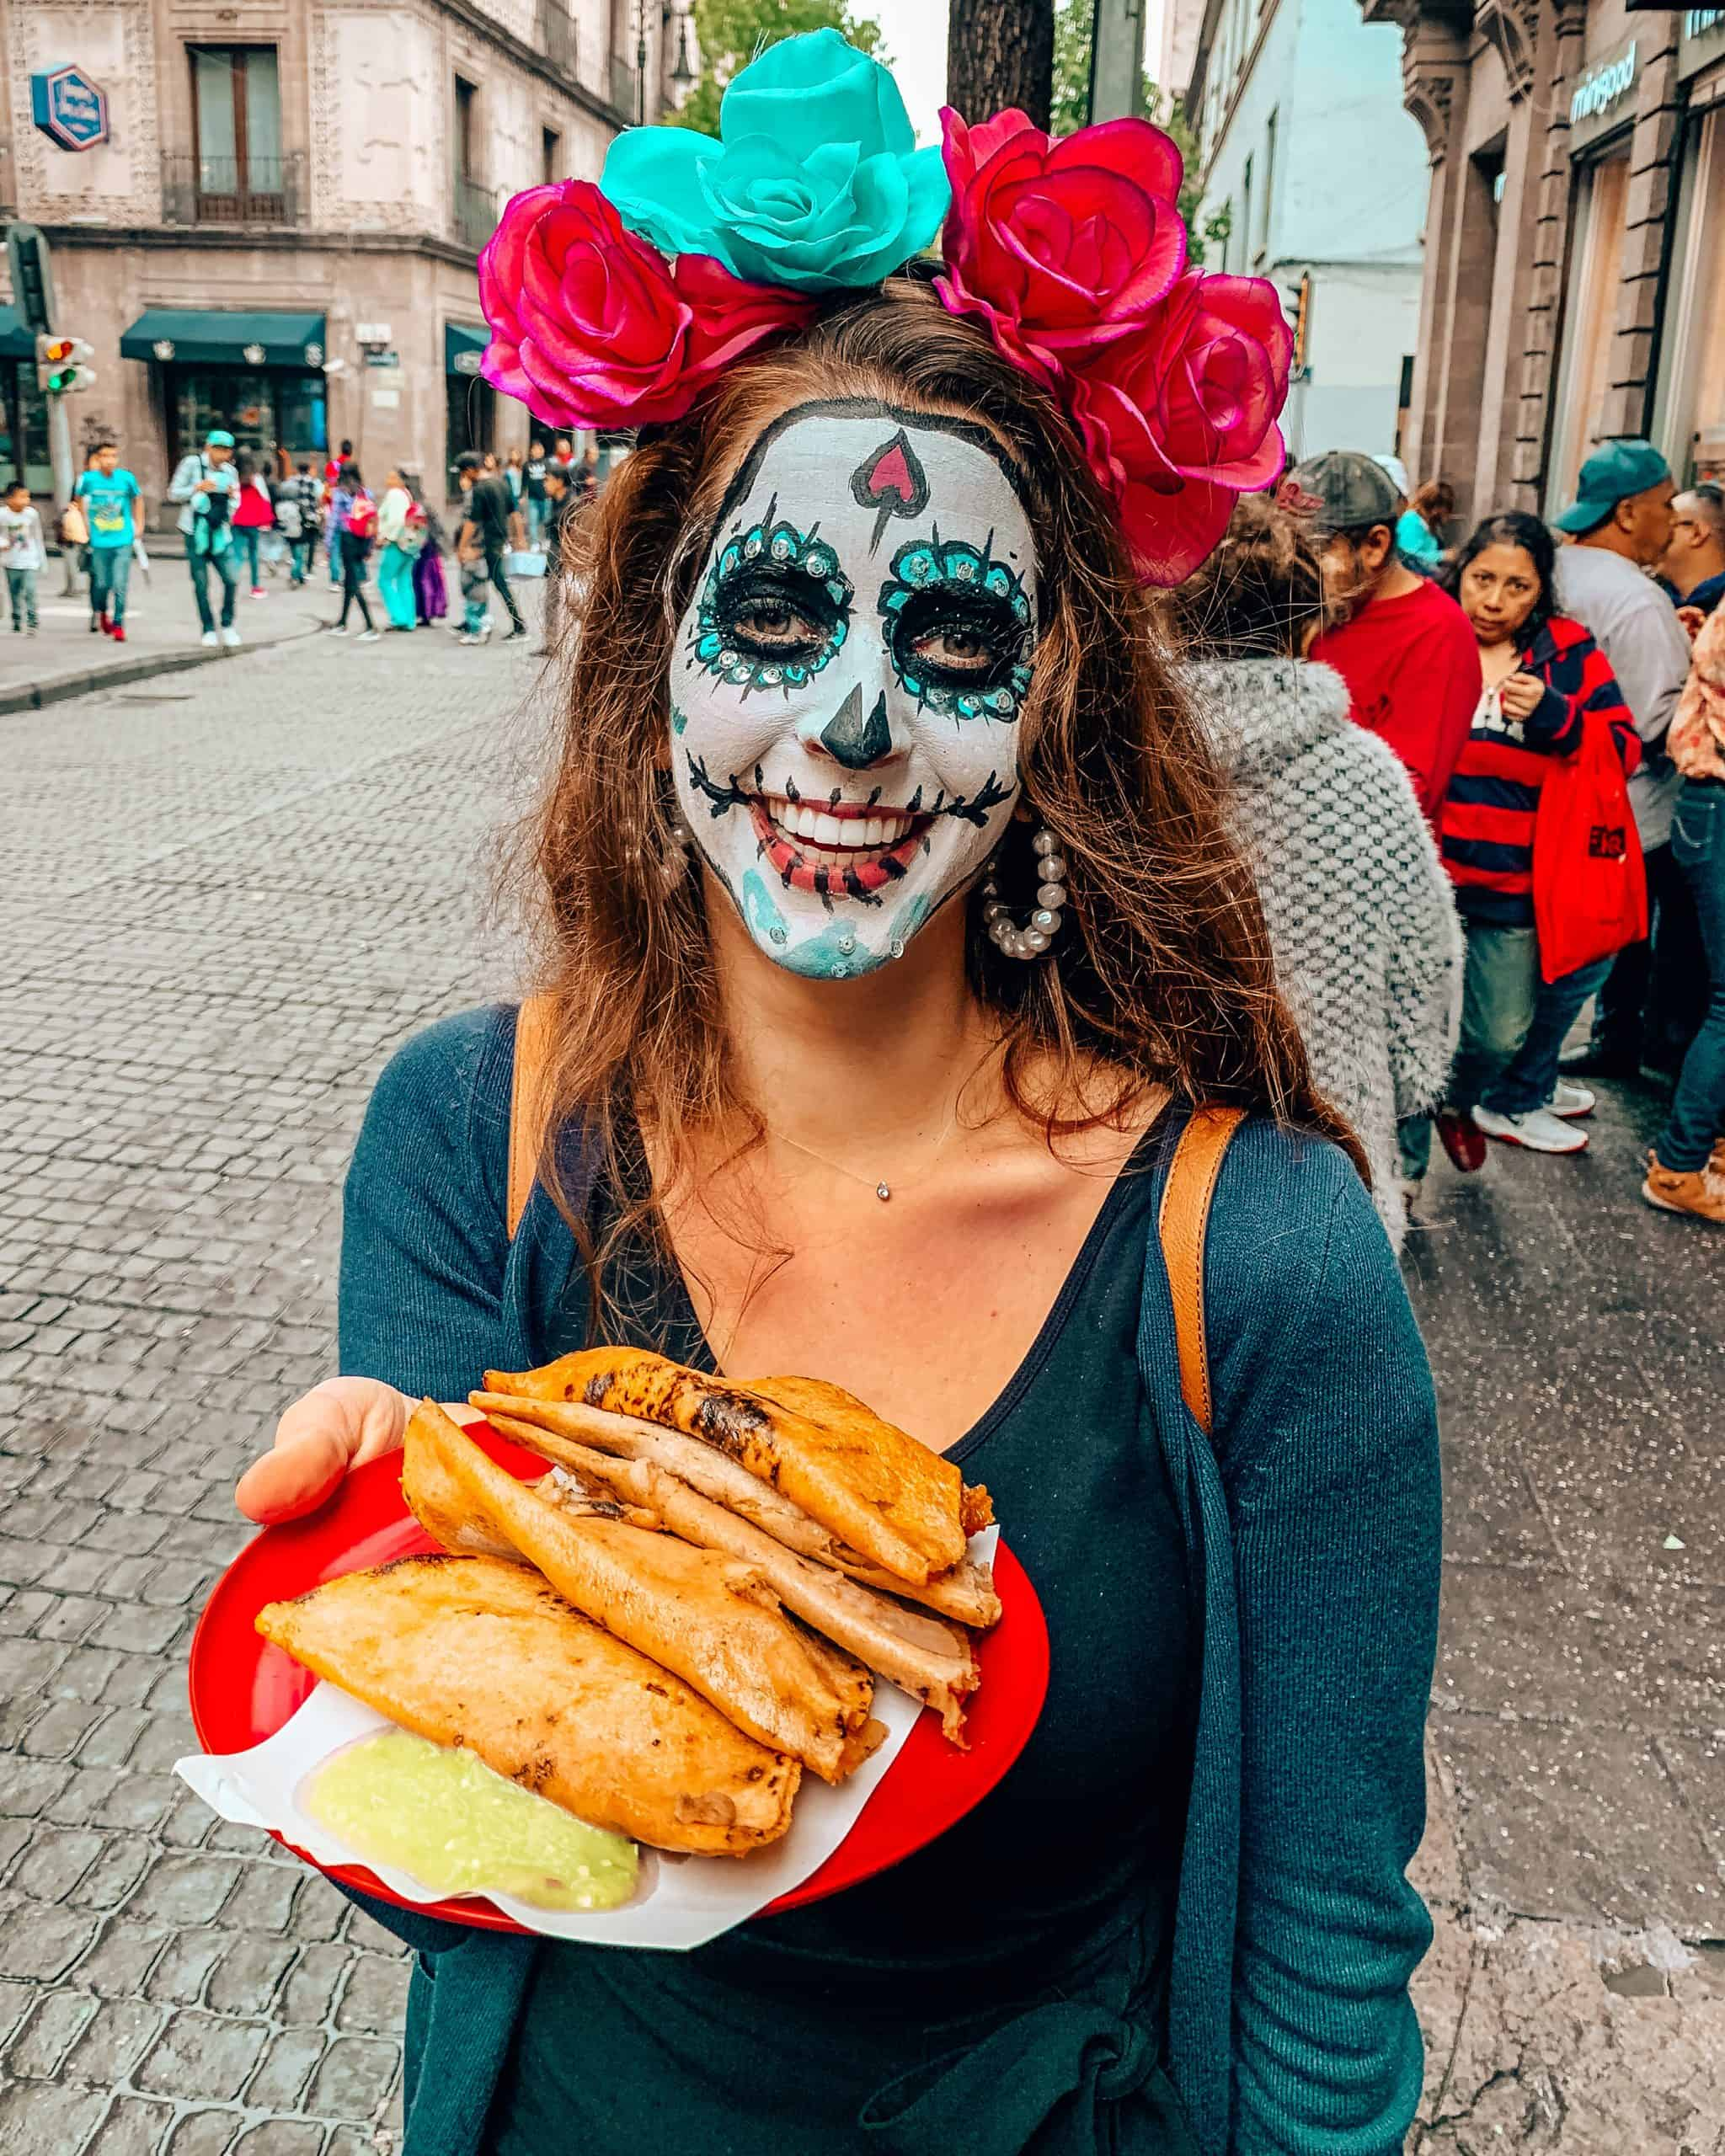 Bettina with Tacos from Street Vendor in Mexico City